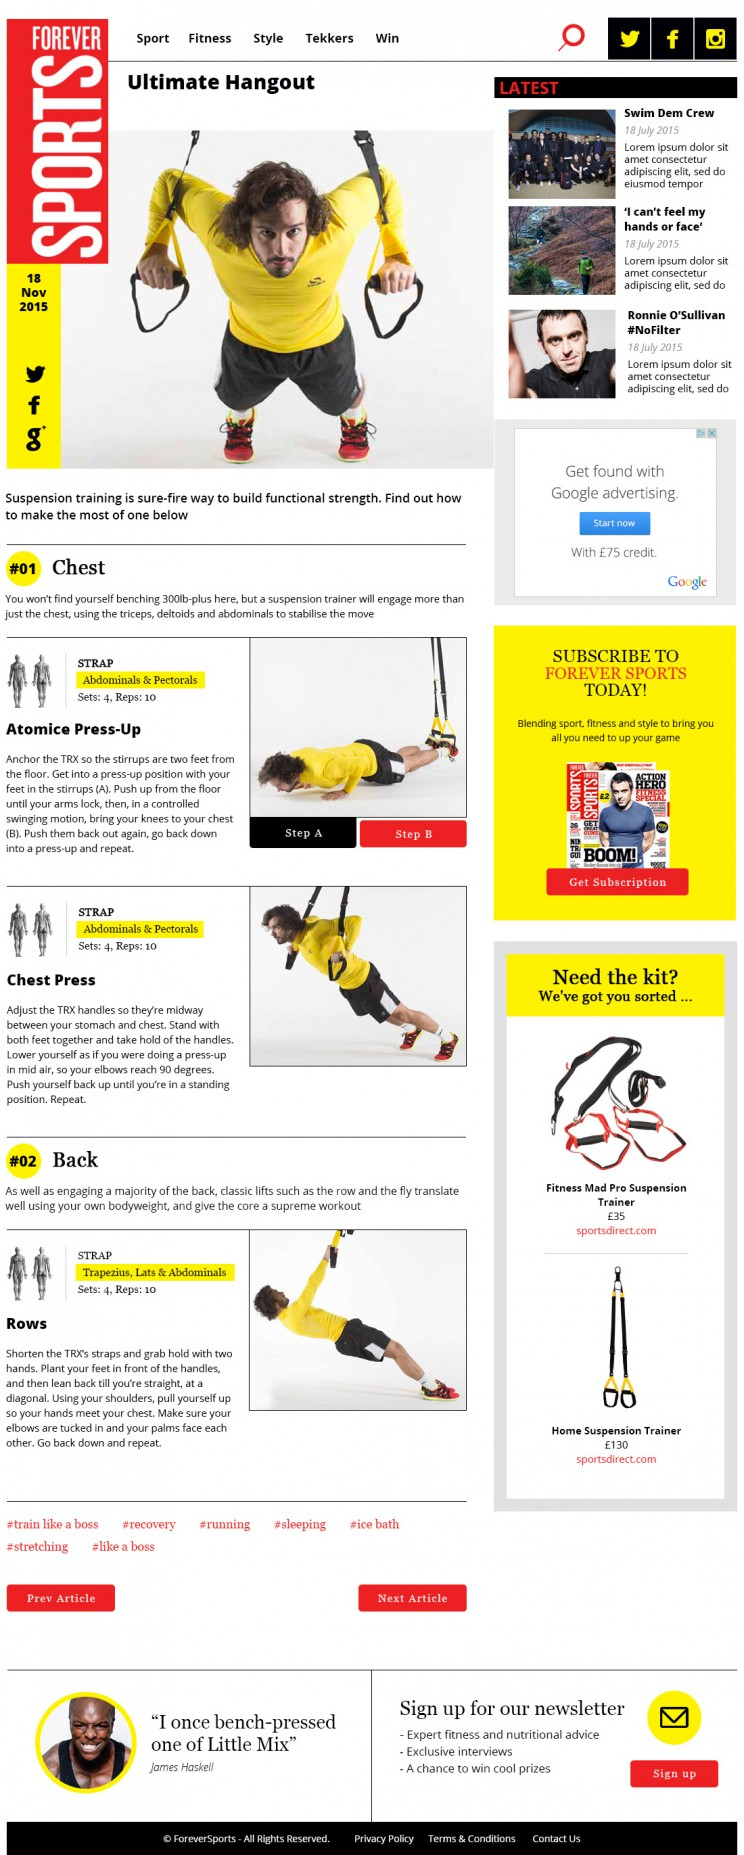 ForeverSport-Redesign-Article2